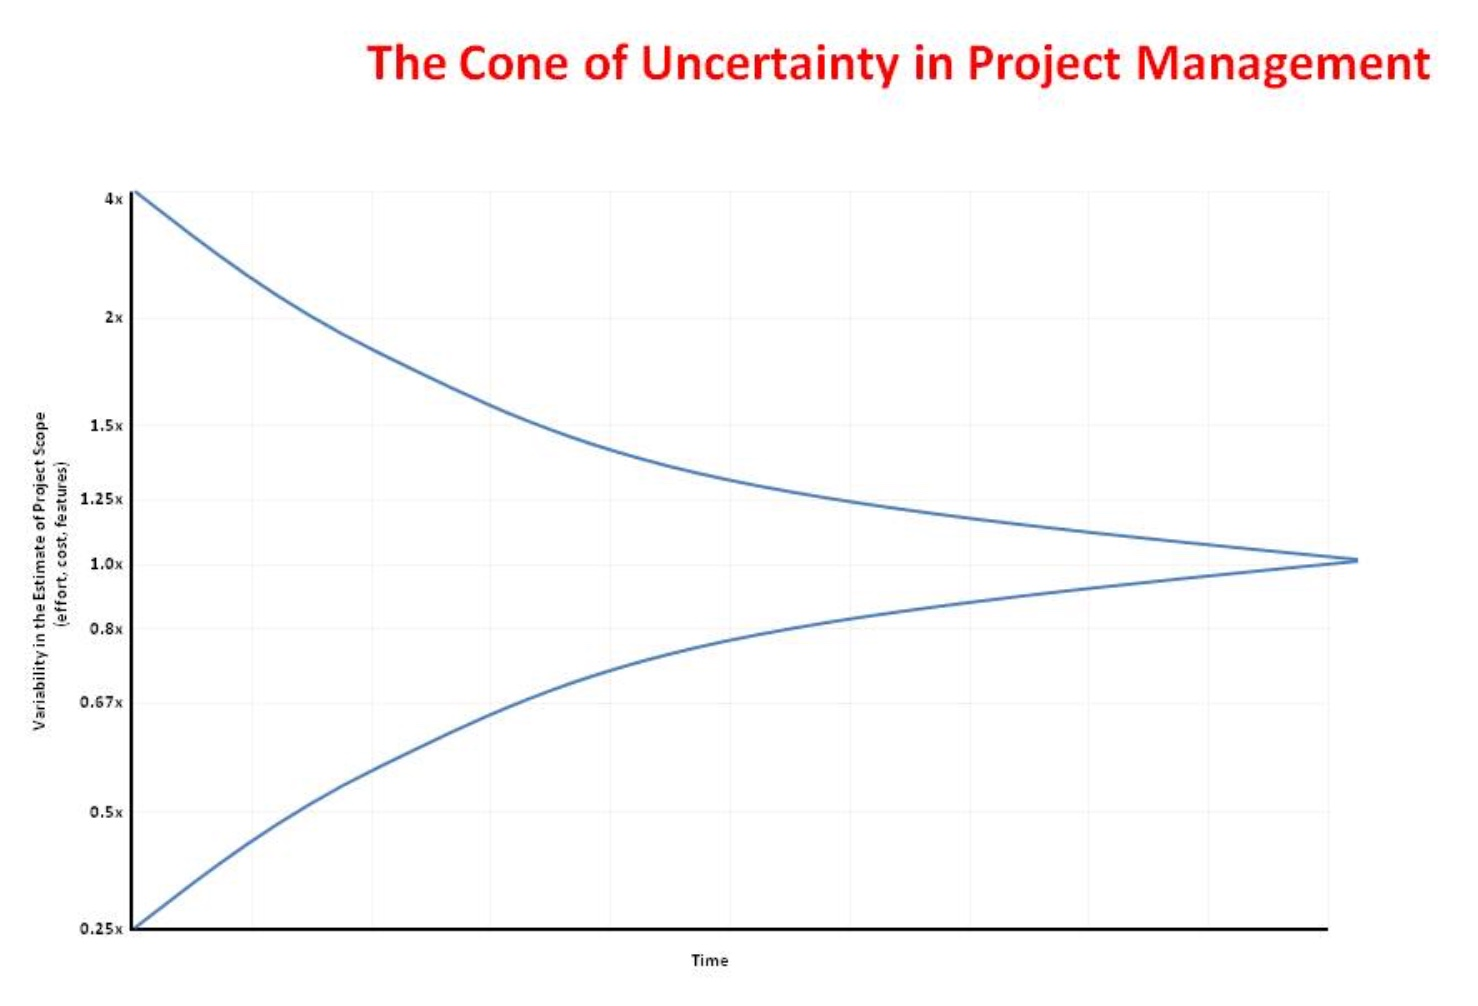 cone_of_uncertainty.jpeg